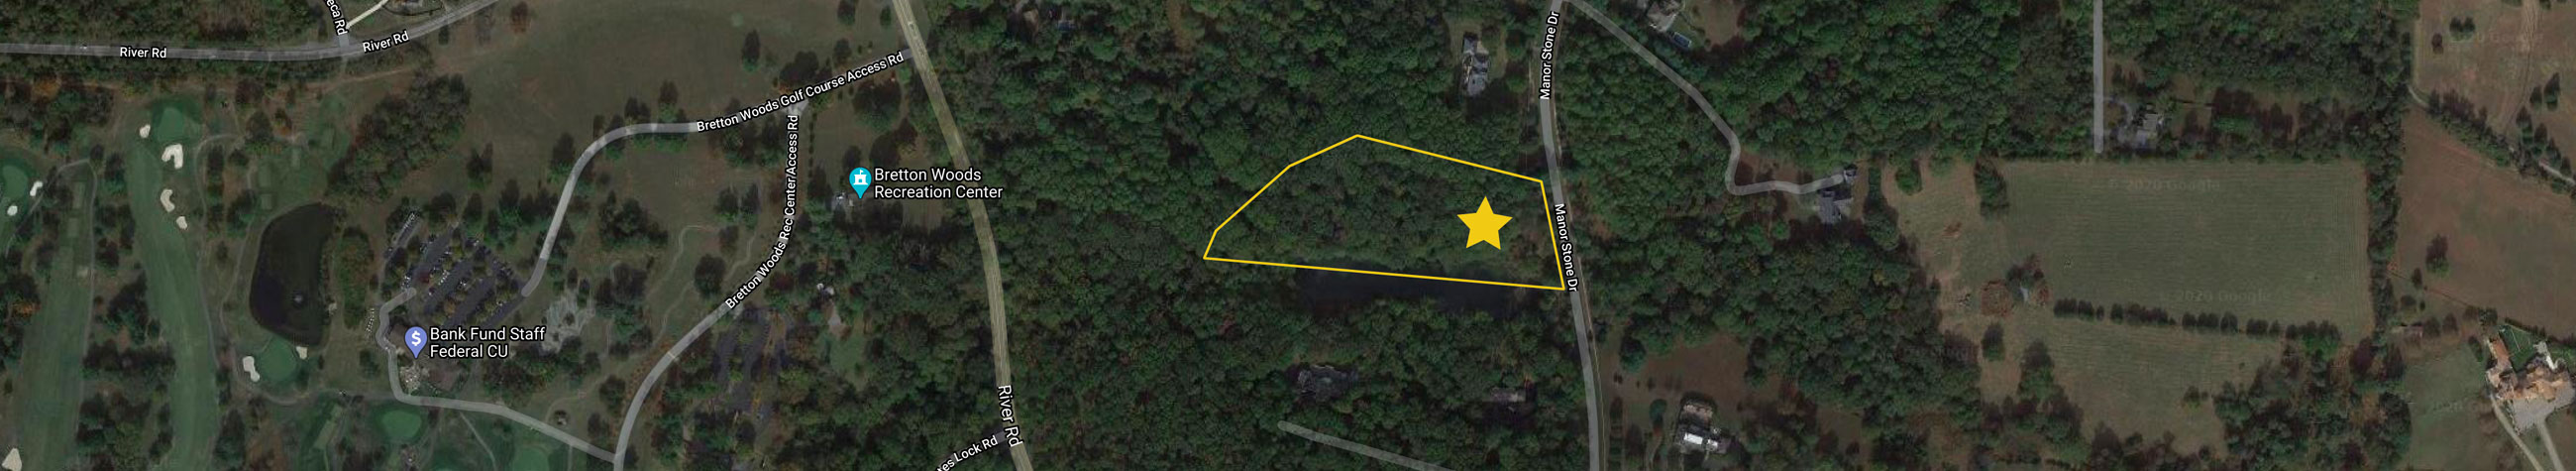 An aerial image showing the site outline for 13316 Manor Stone Dr